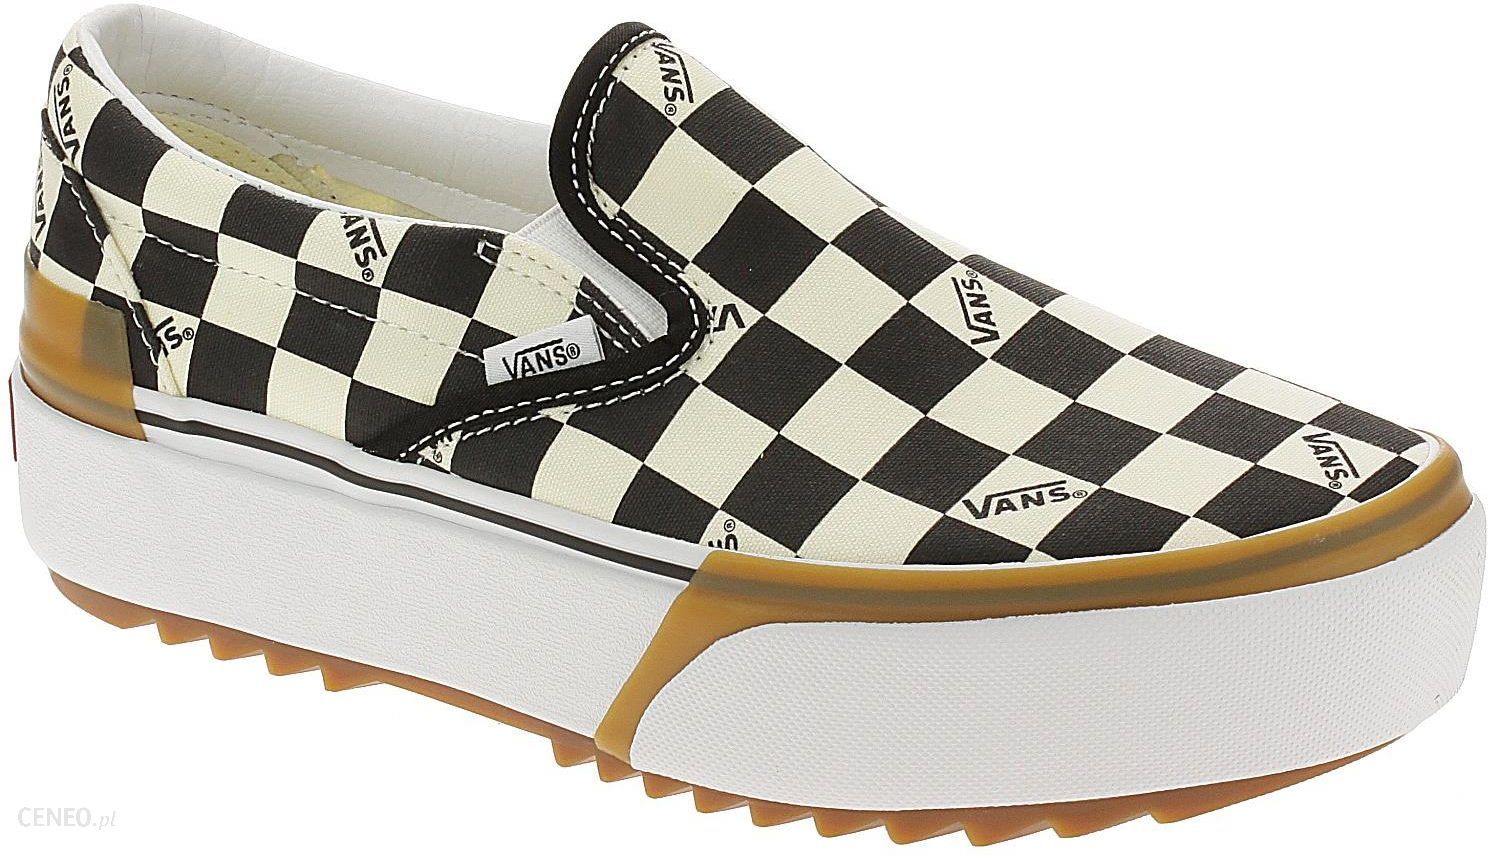 Buty Vans Classic Slip On Stacked CheckerboardMultiTrue White 40 Ceny i opinie Ceneo.pl